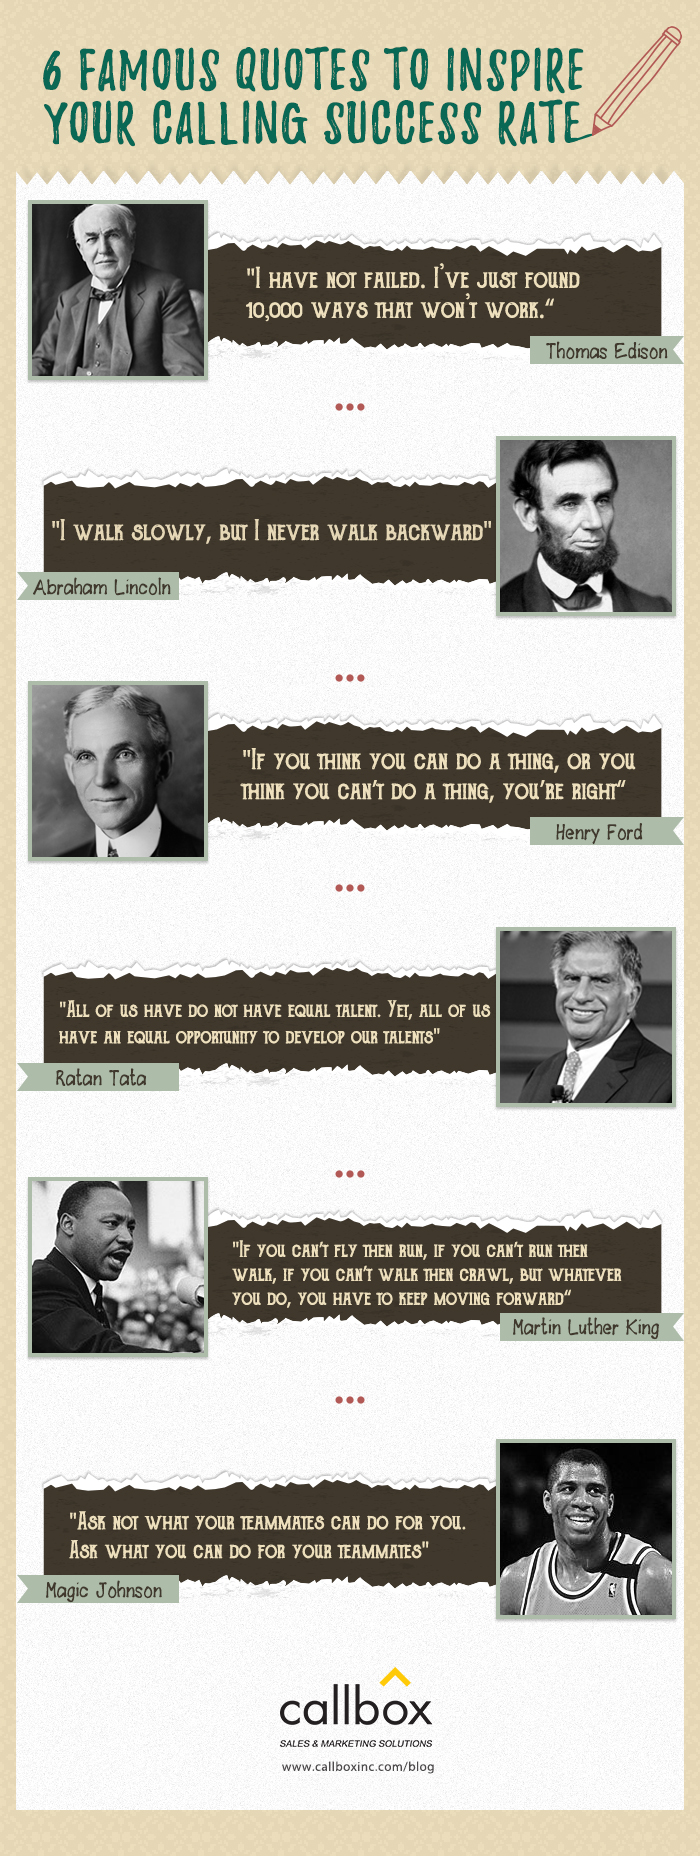 6 Famous Quotes to Inspire your Calling Success Rate - Infographic - Callboxinc.com